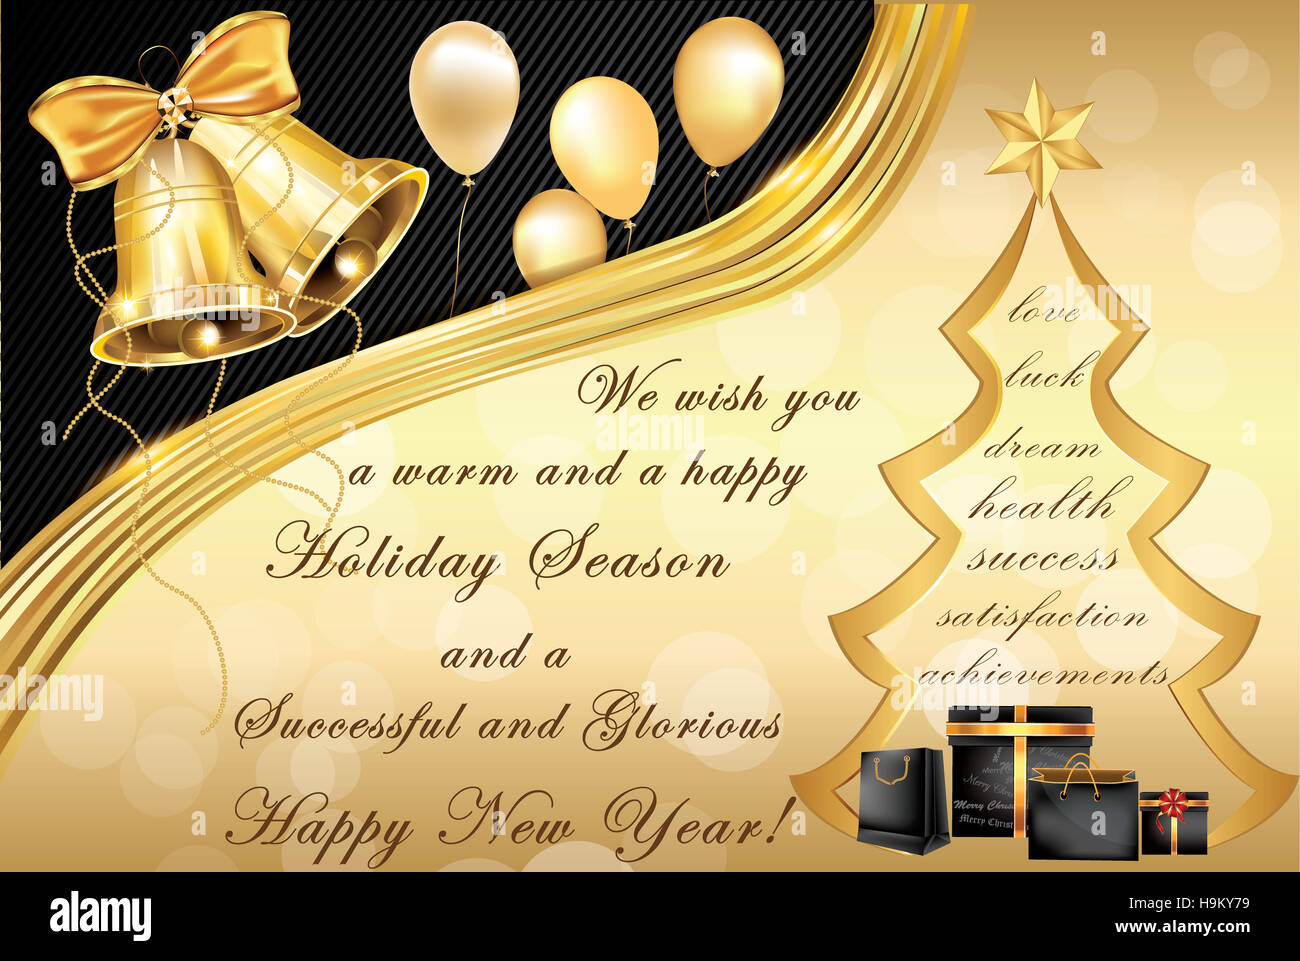 Elegant Corporate Christmas And New Year Greeting Card